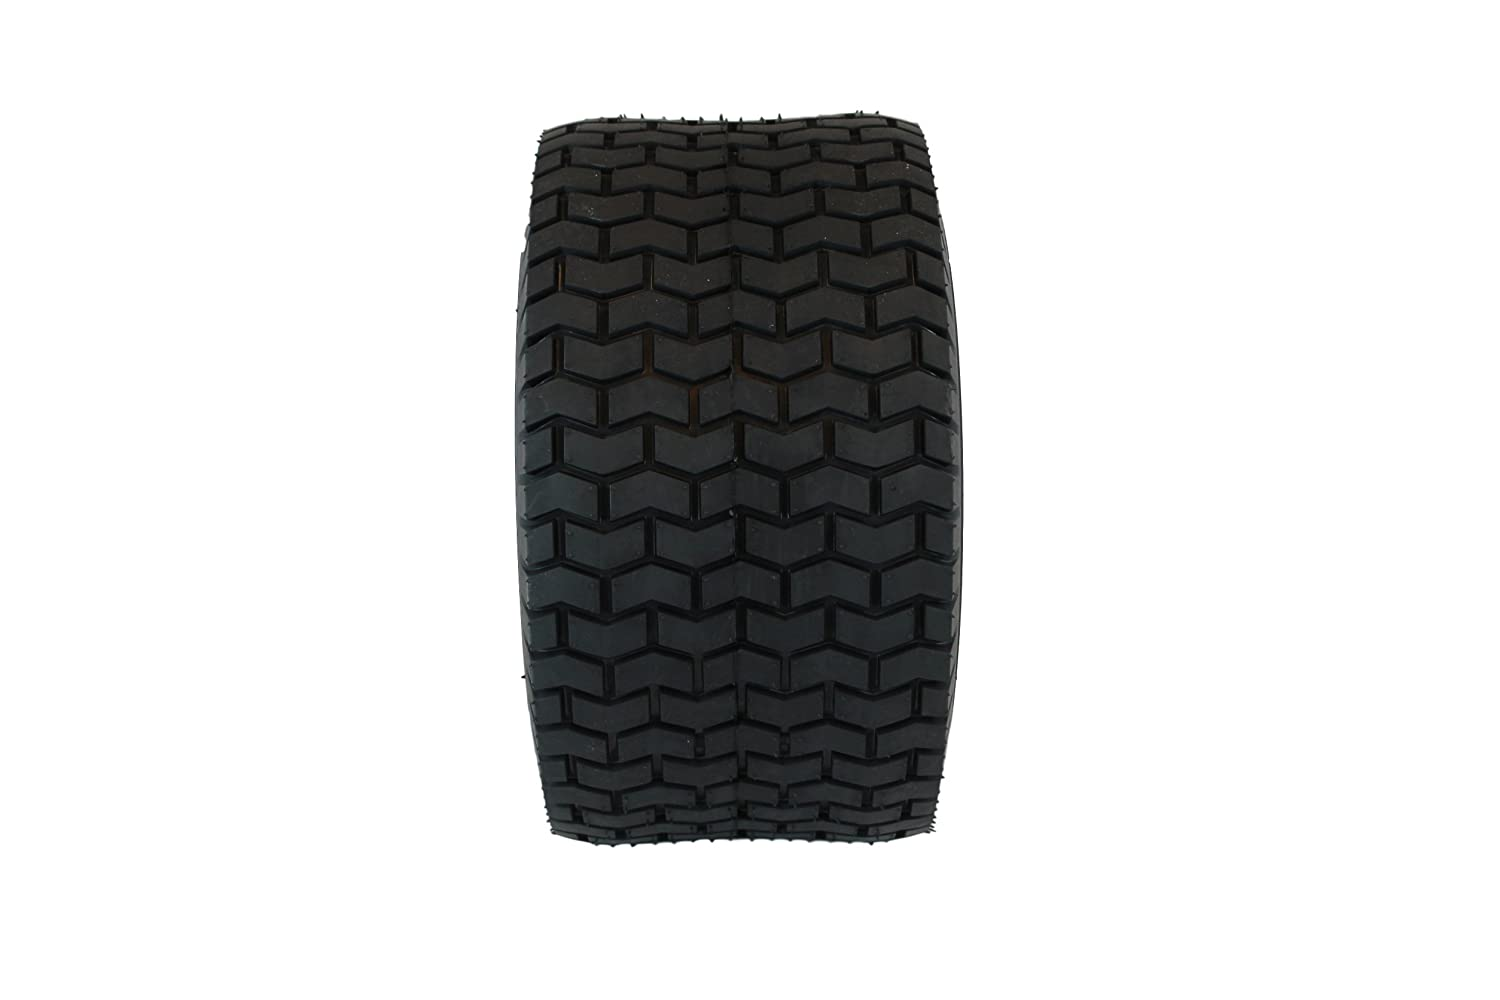 2 18x9.5-8 Antego Set of Two 18x9.50-8 4 Ply Turf Tire for Lawn /& Garden Mower